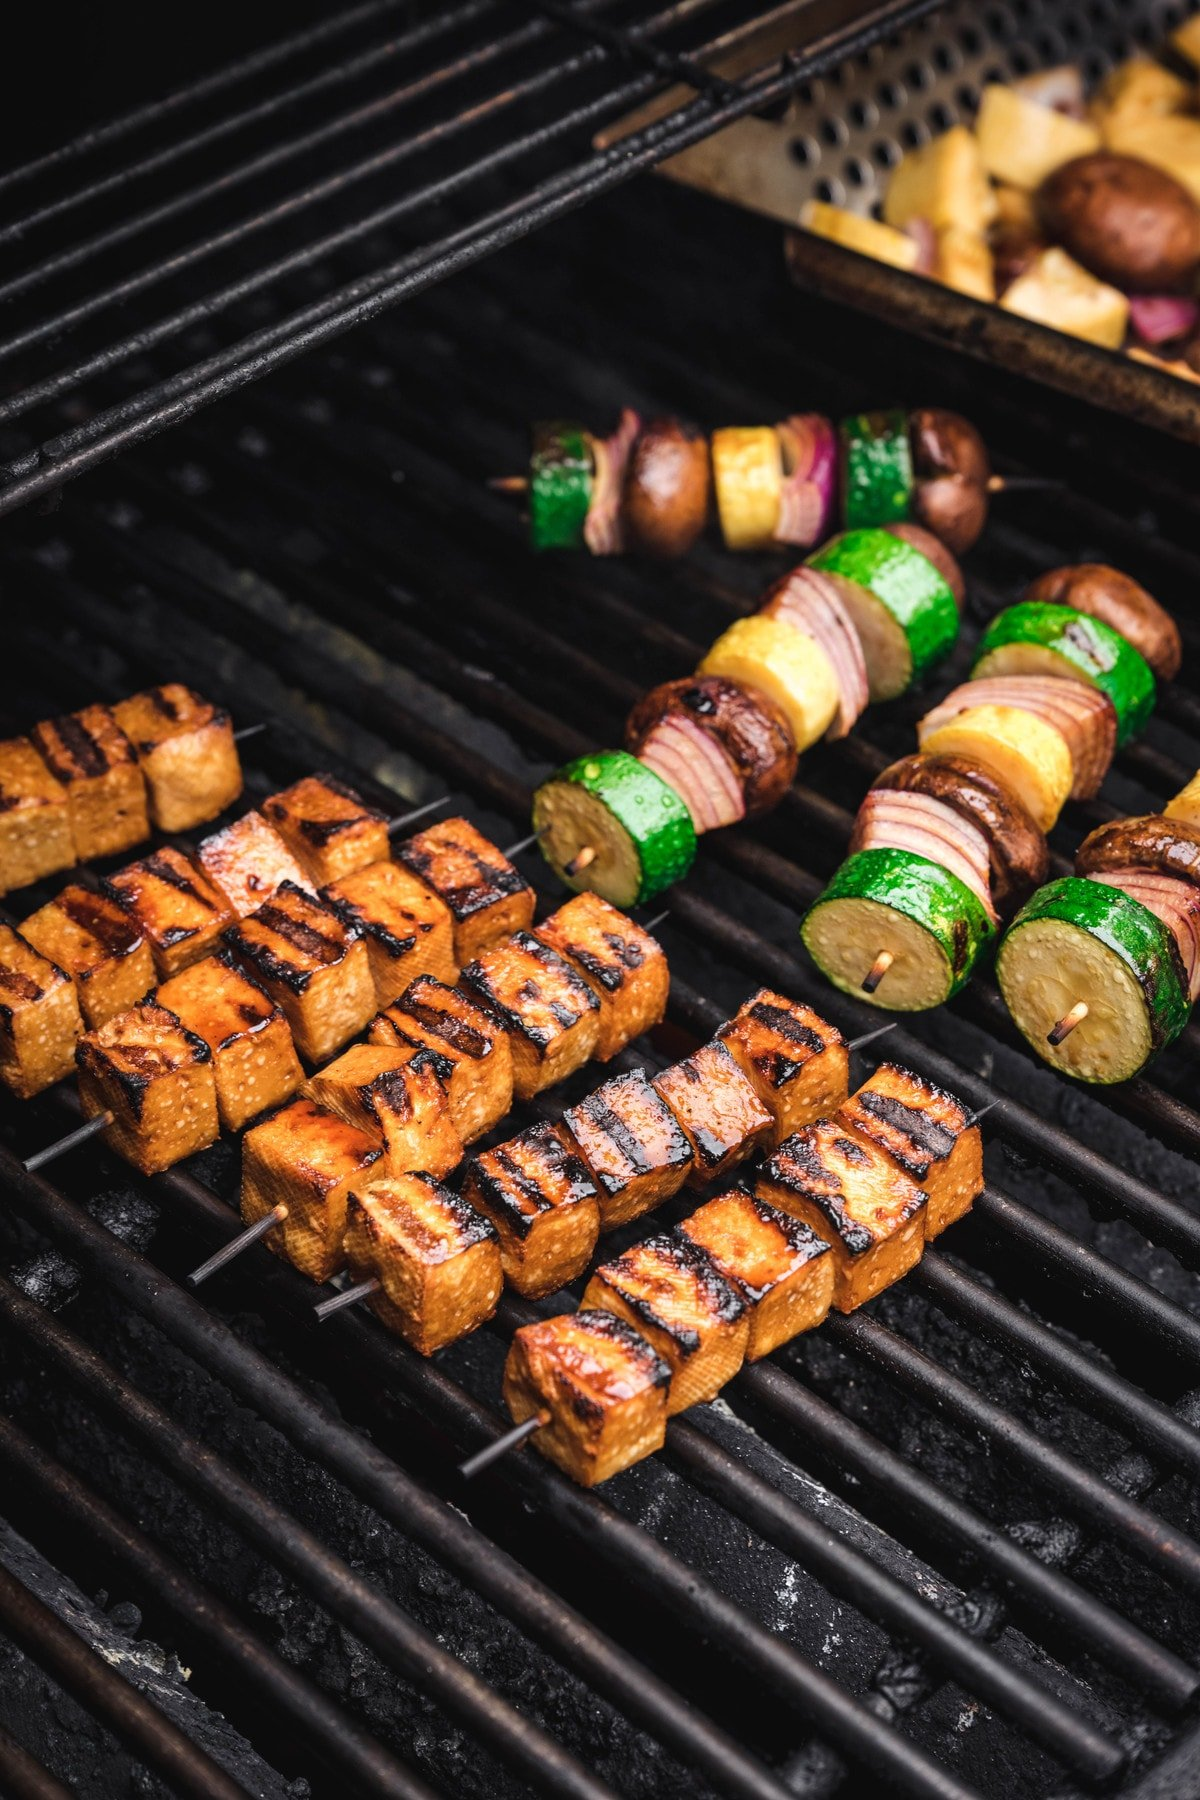 marinated tofu and vegetable kebabs cooking on a grill outside